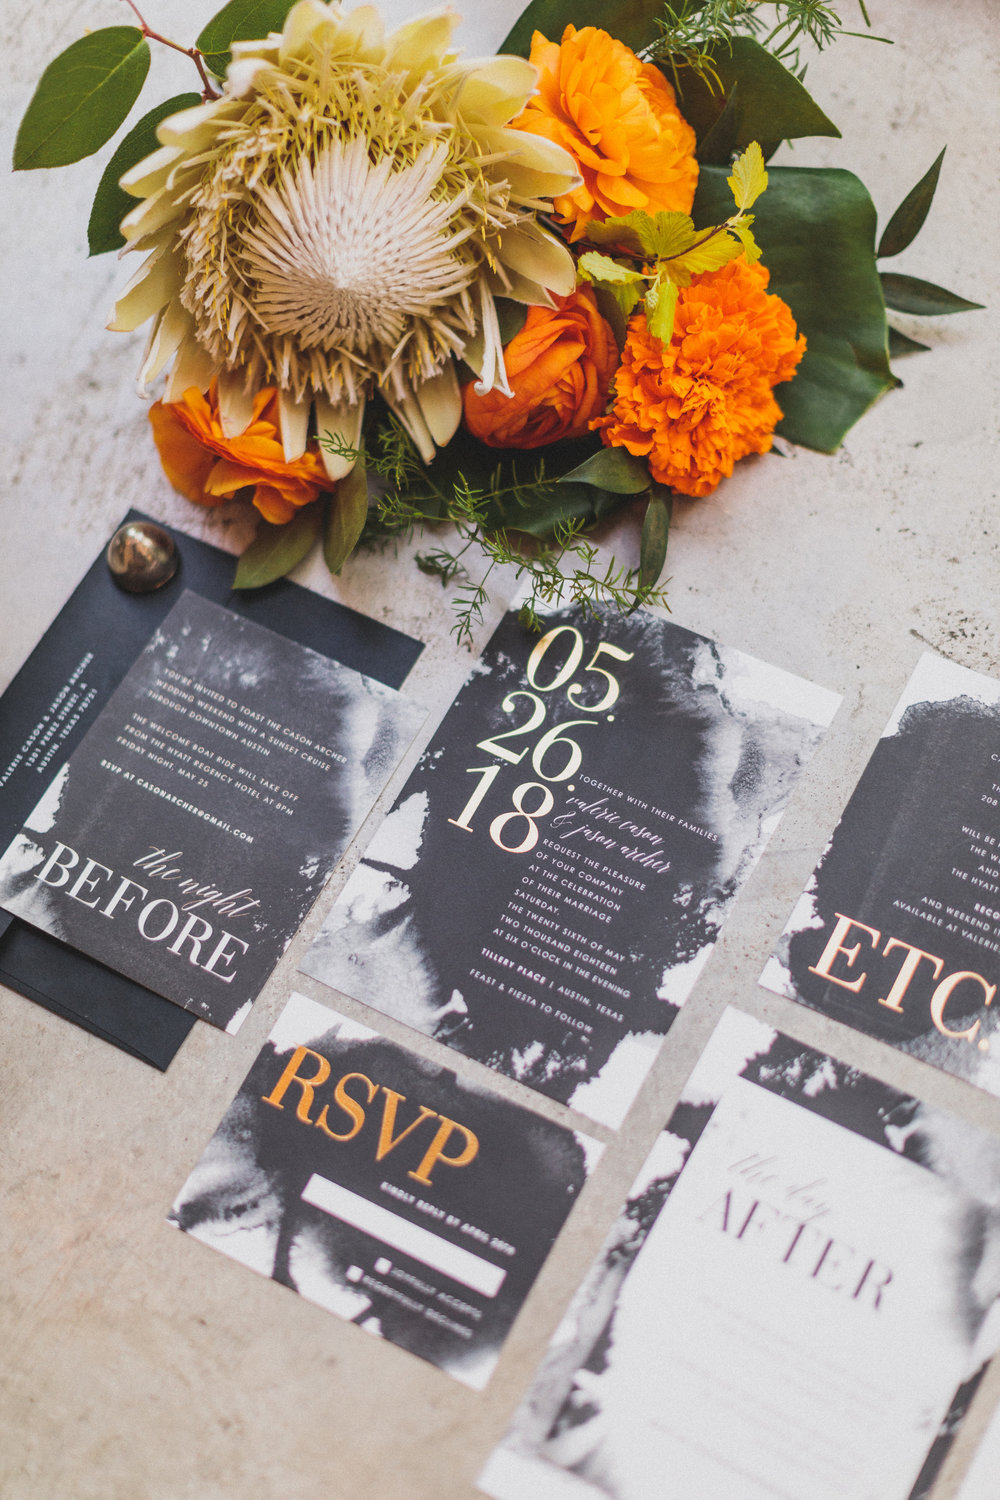 A Vibrant, Tropical Austin Wedding - The Overwhelmed Bride Wedding Blog Inspiration